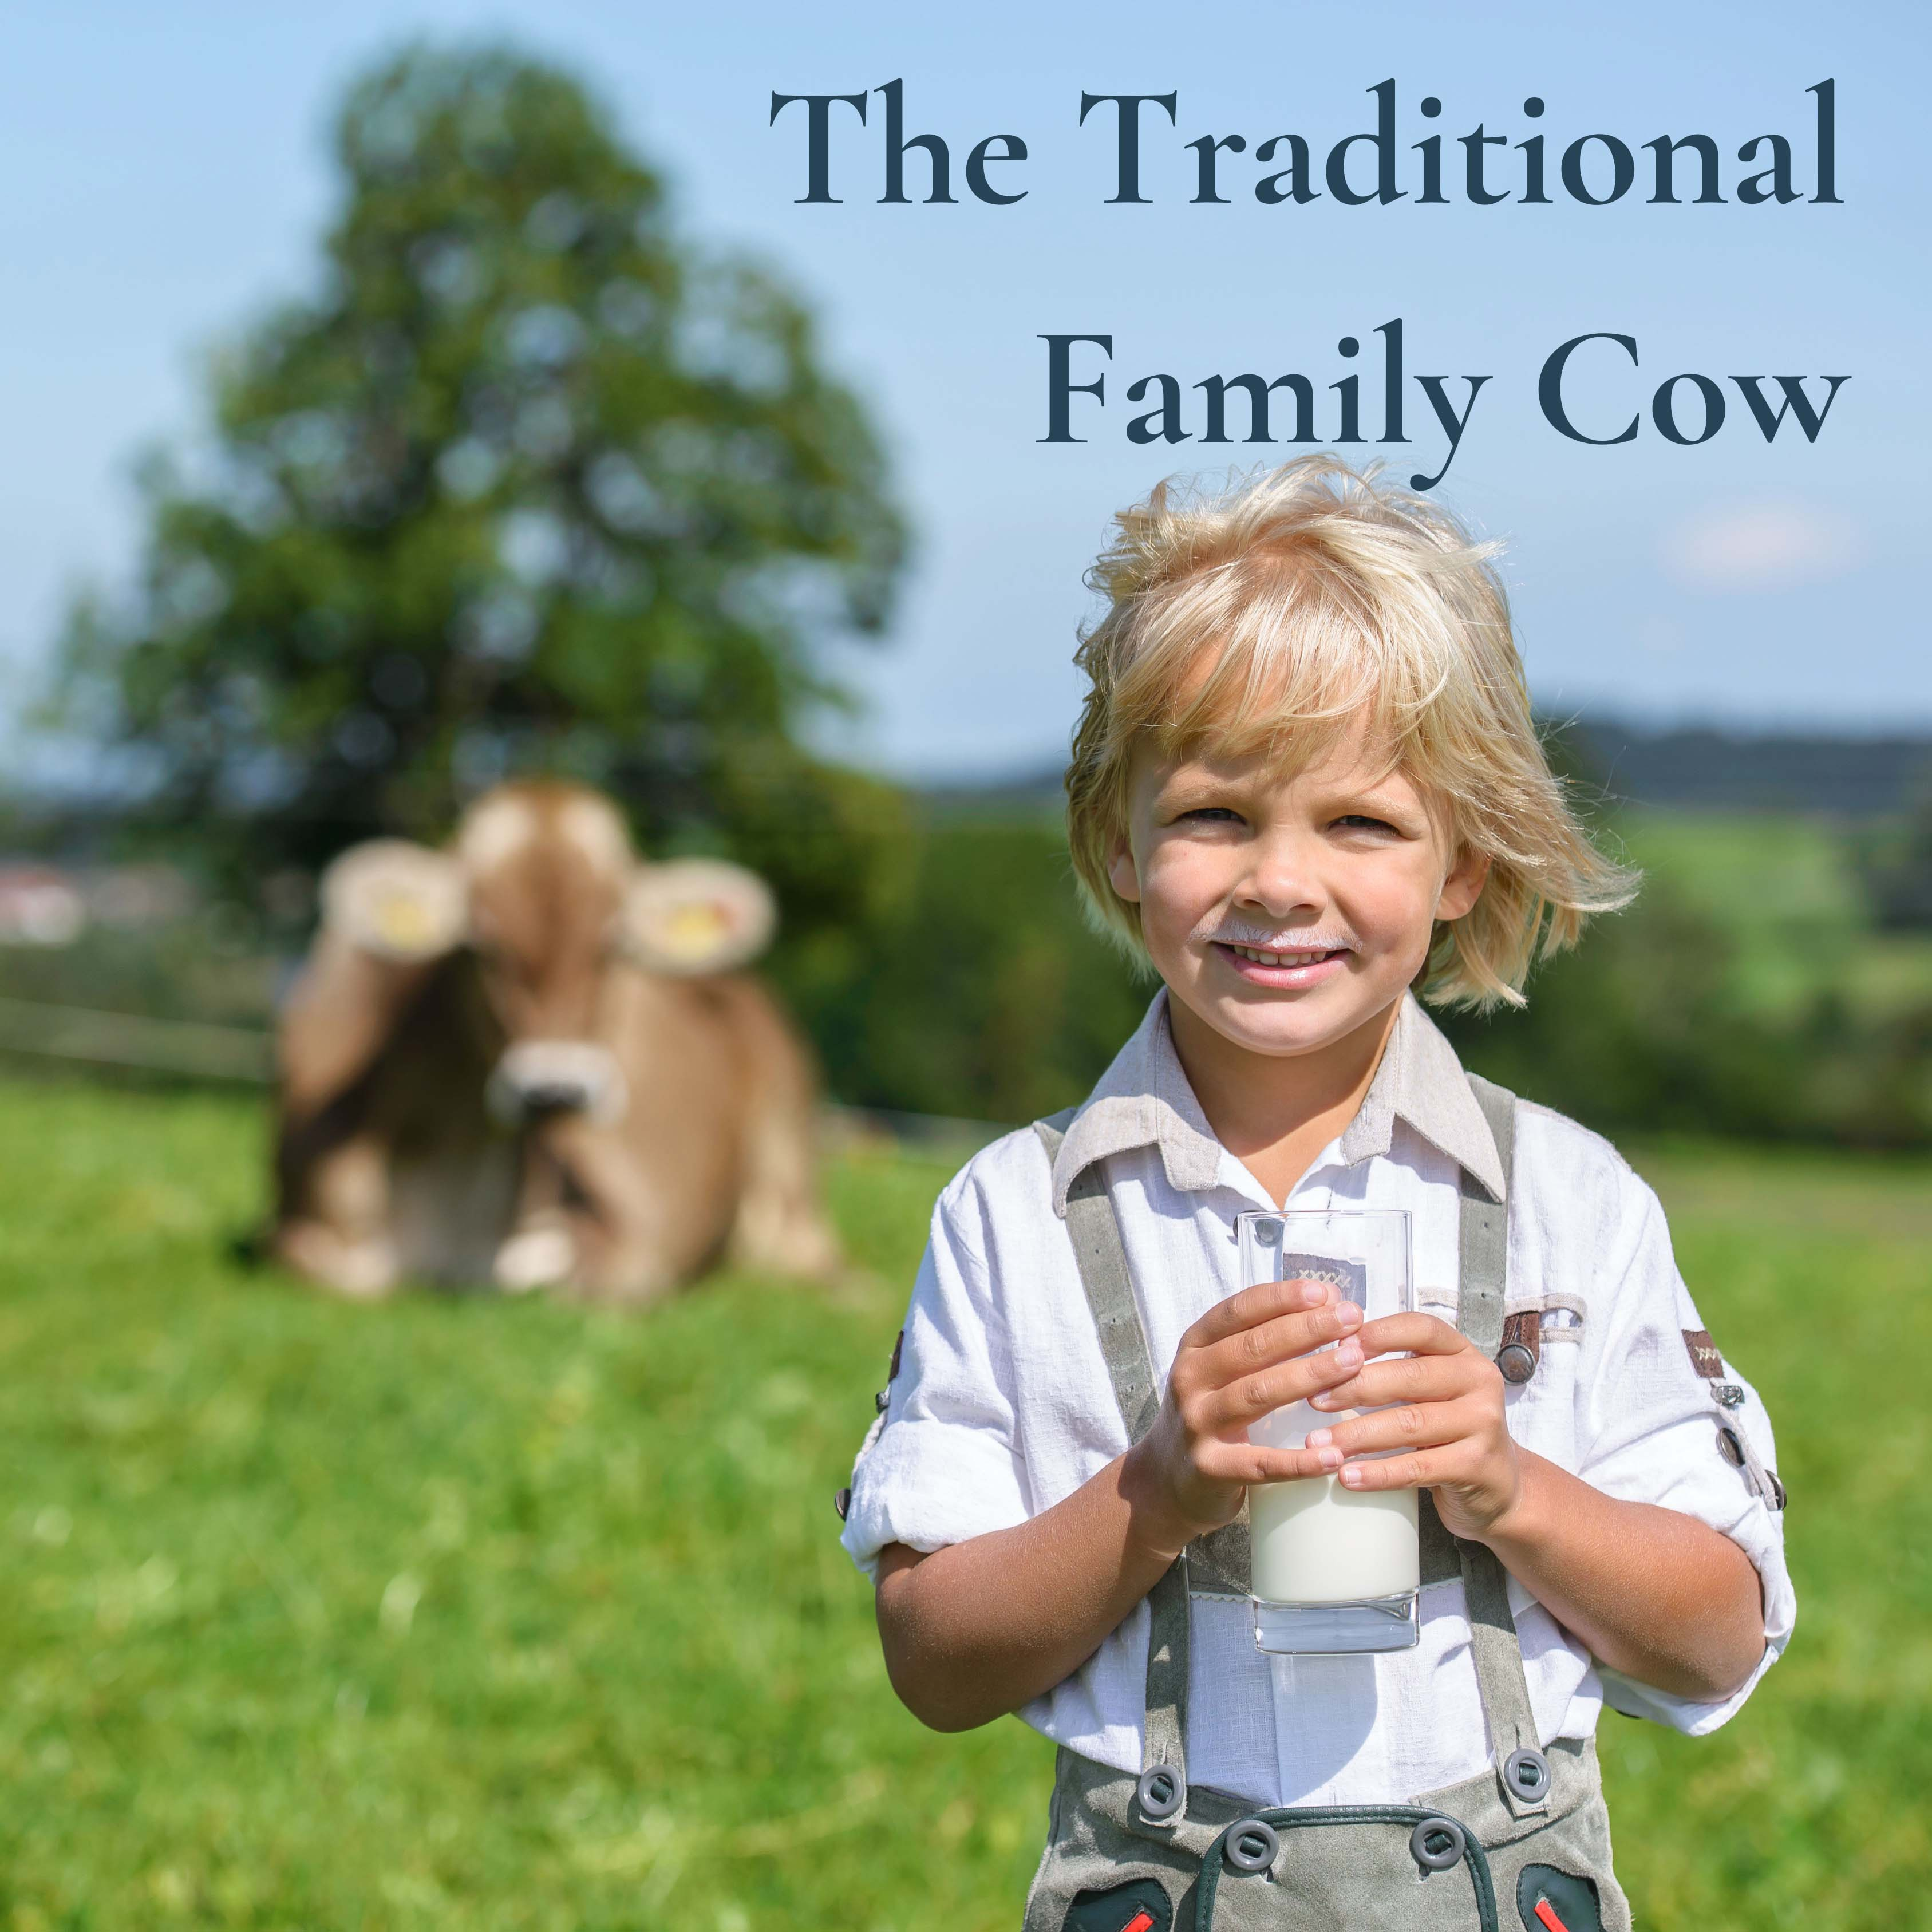 The Traditional Family Cow